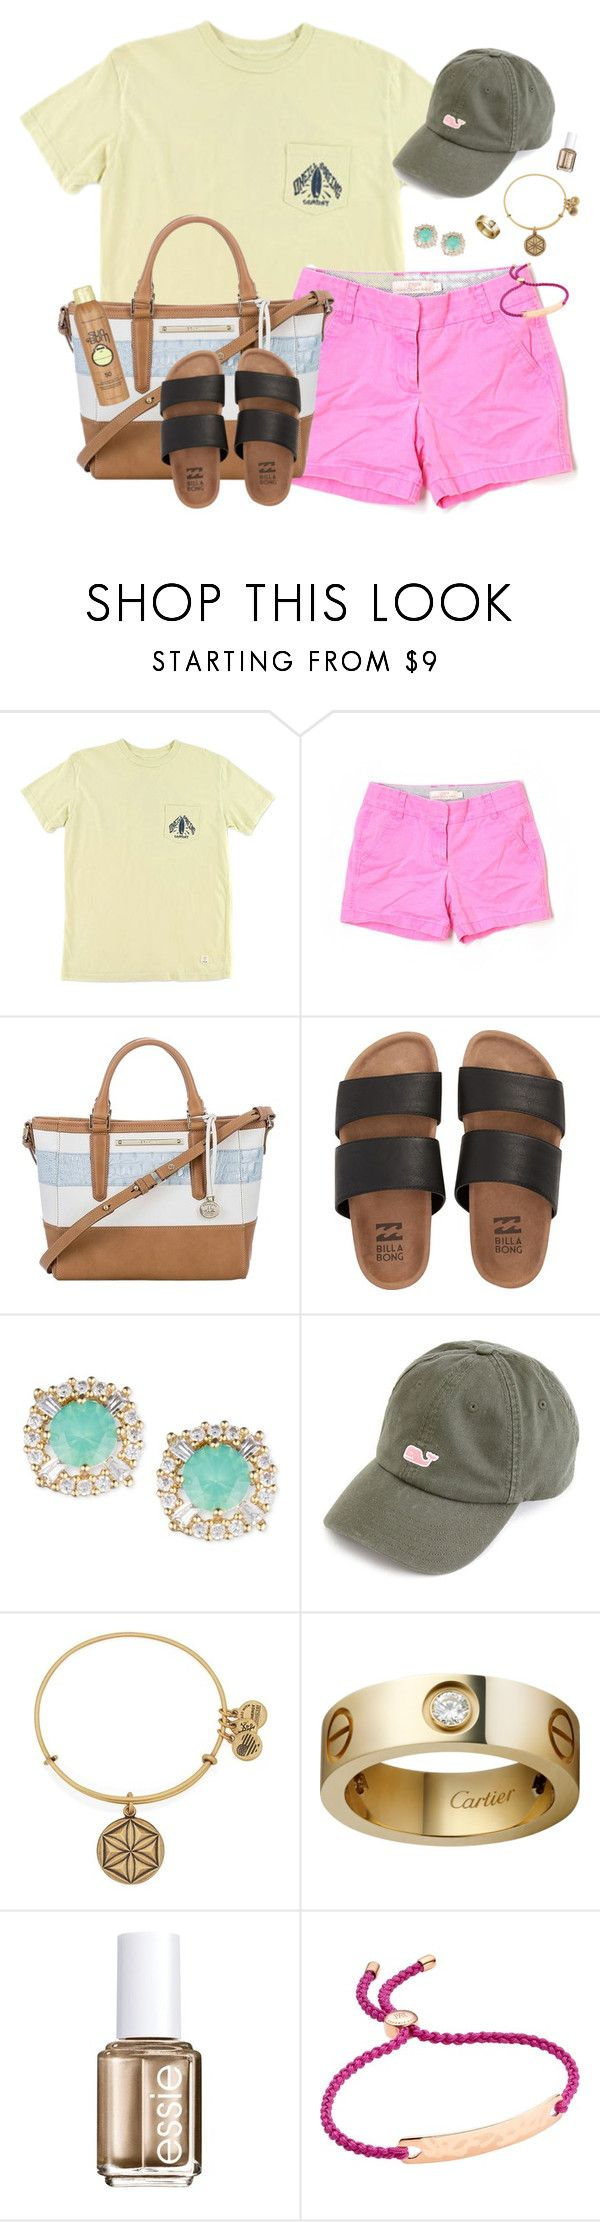 """""""Someone Tell Me What Coachella is!"""" by southernstylish ❤ liked on Polyvore featuring O'Neill, J.Crew, Brahmin, Billabong, Anne Klein, Alex and Ani, Essie, Monica Vinader and Sun Bum"""